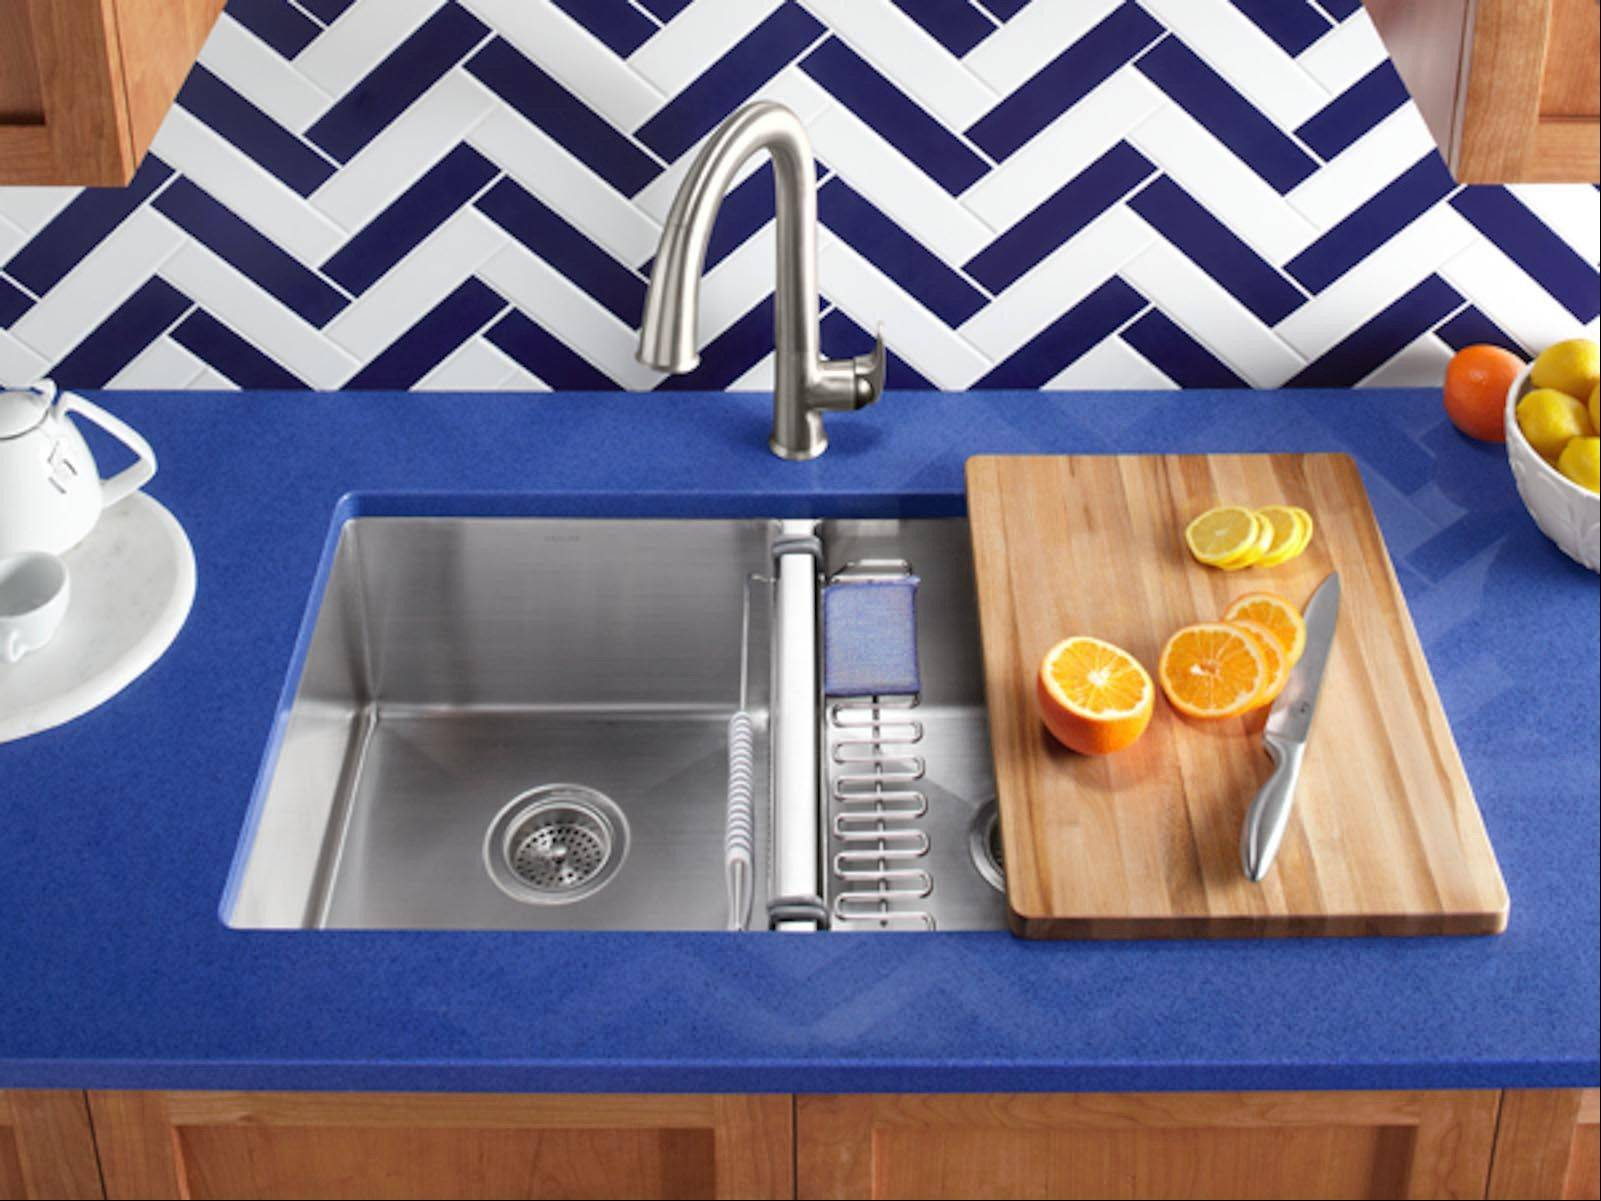 Courtesy of Kohler Choosing a quality faucet is key. However, most kitchen faucets can easily be replaced down the road.